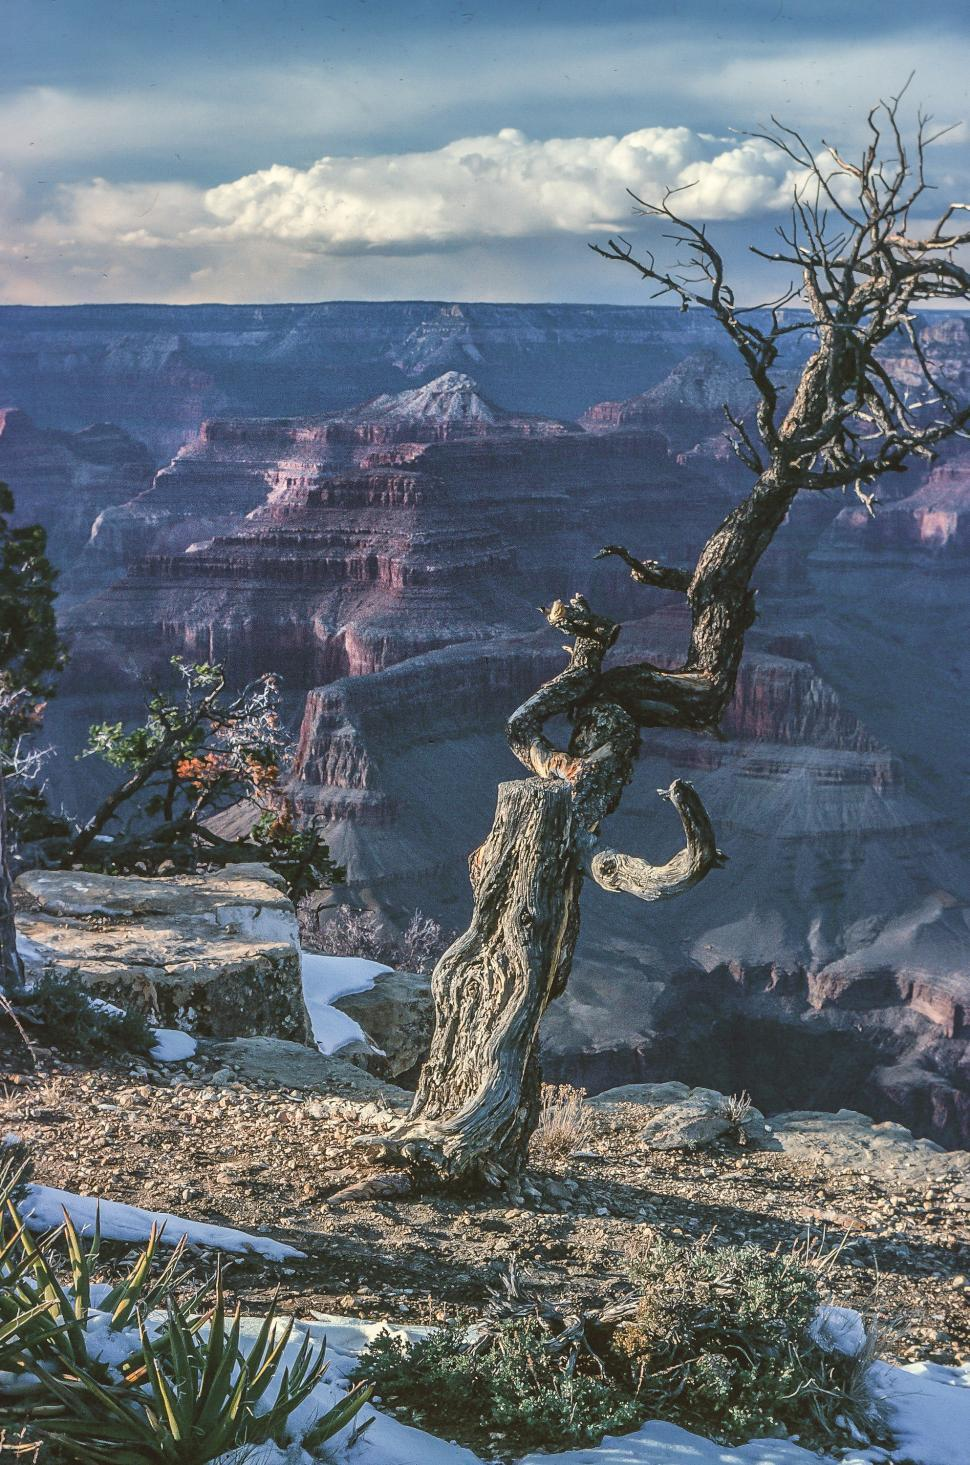 Download Free Stock HD Photo of Grand Canyon Dead Tree Online